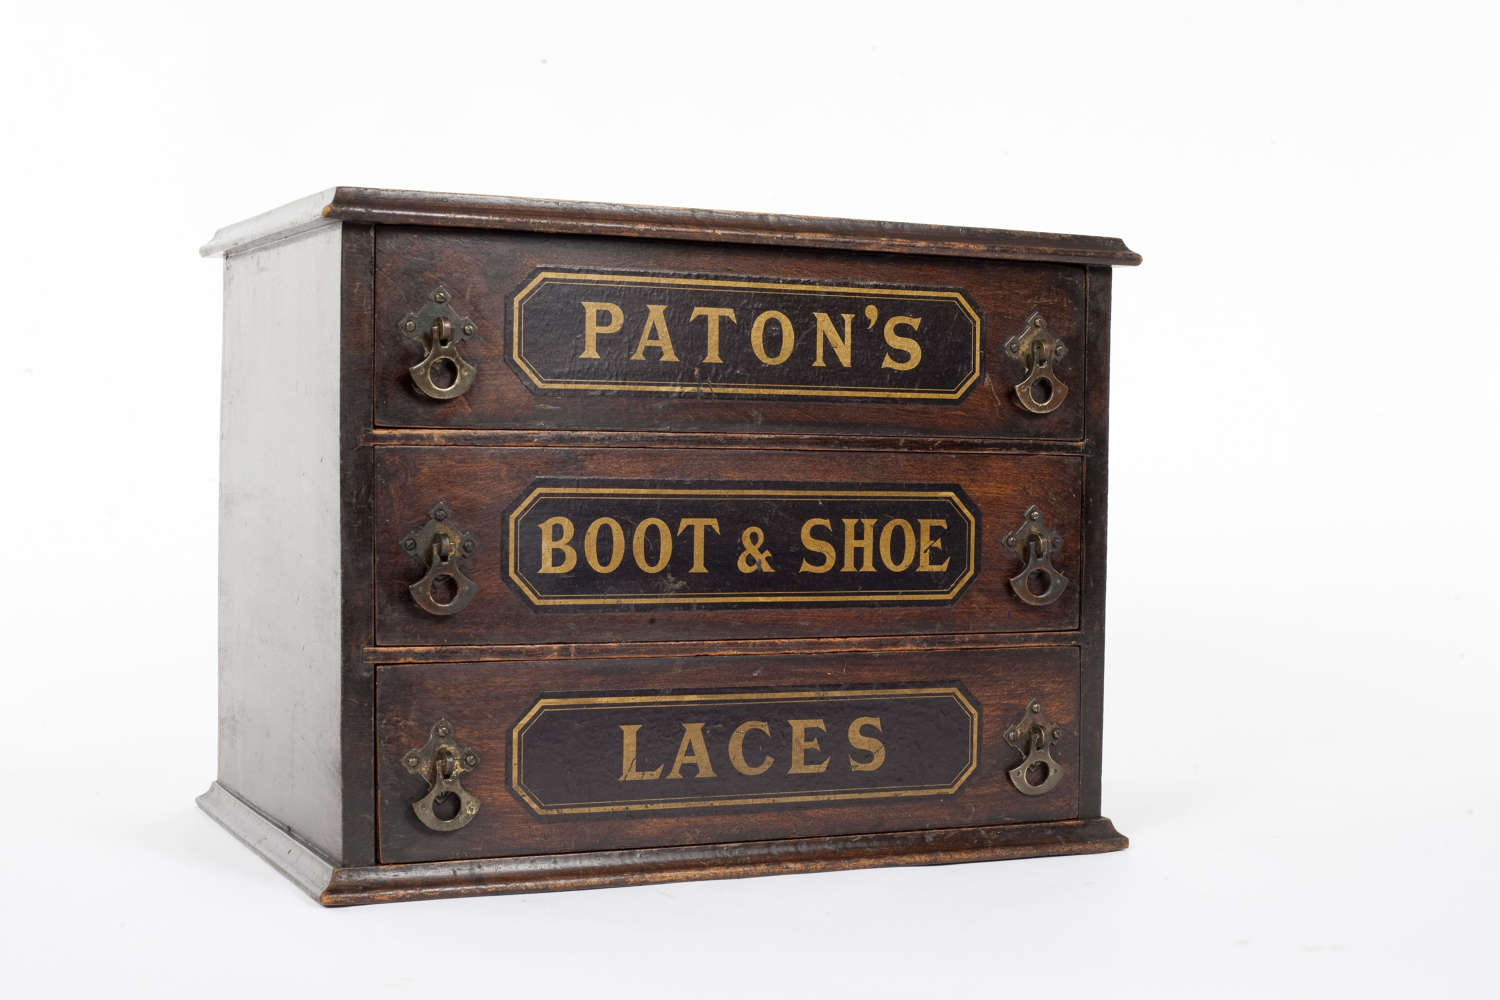 Shop display cabinet for Paton's Boot and Shoe Laces